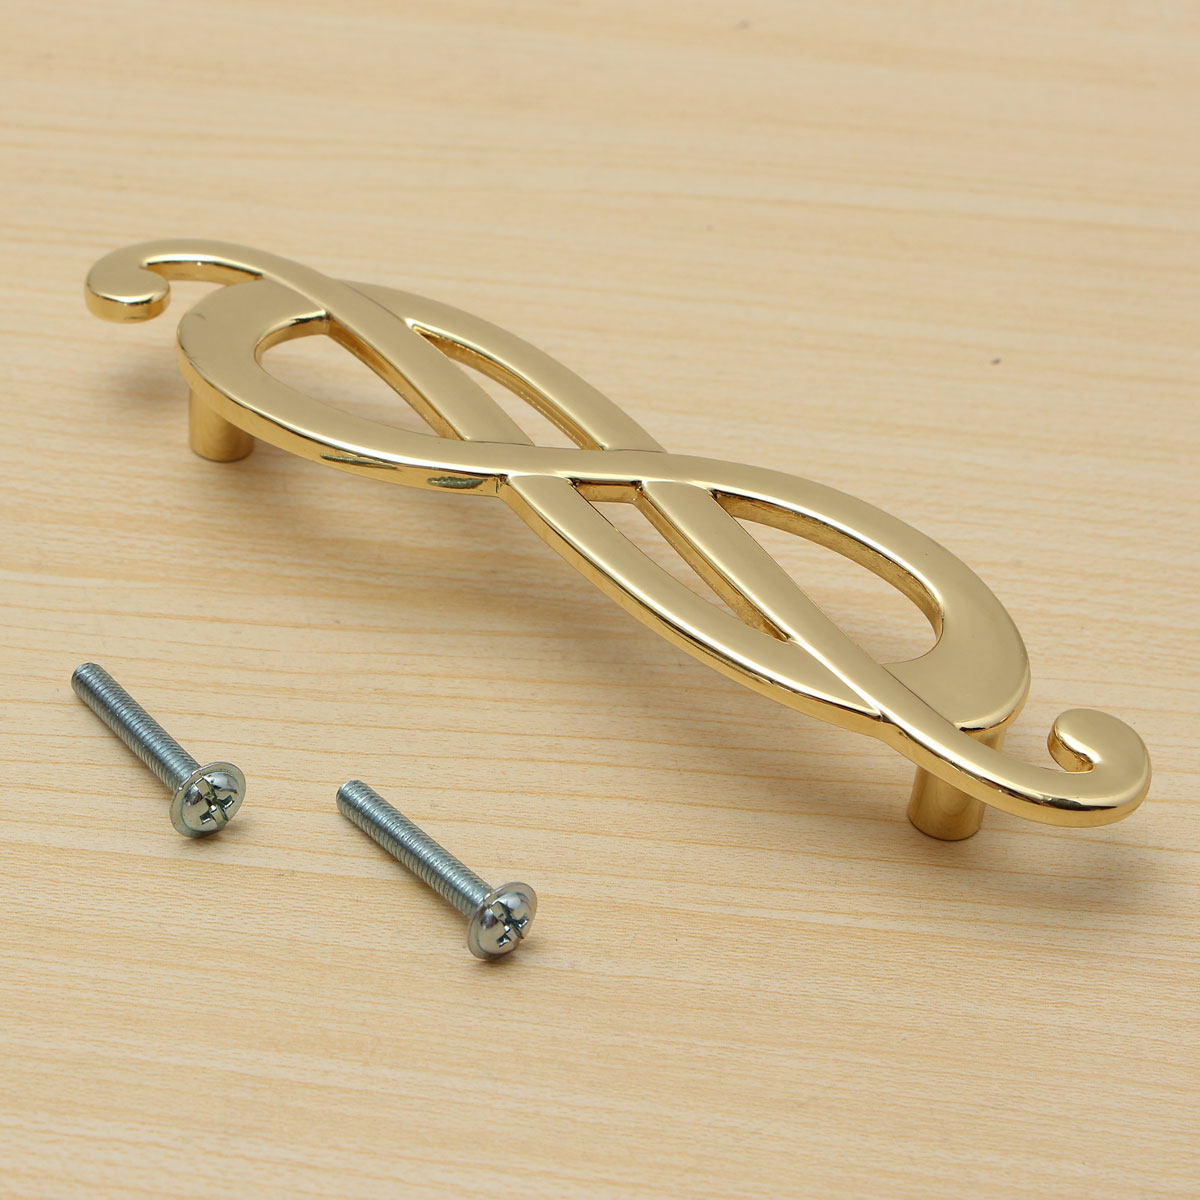 Silver And Gold Cabinet Hardware